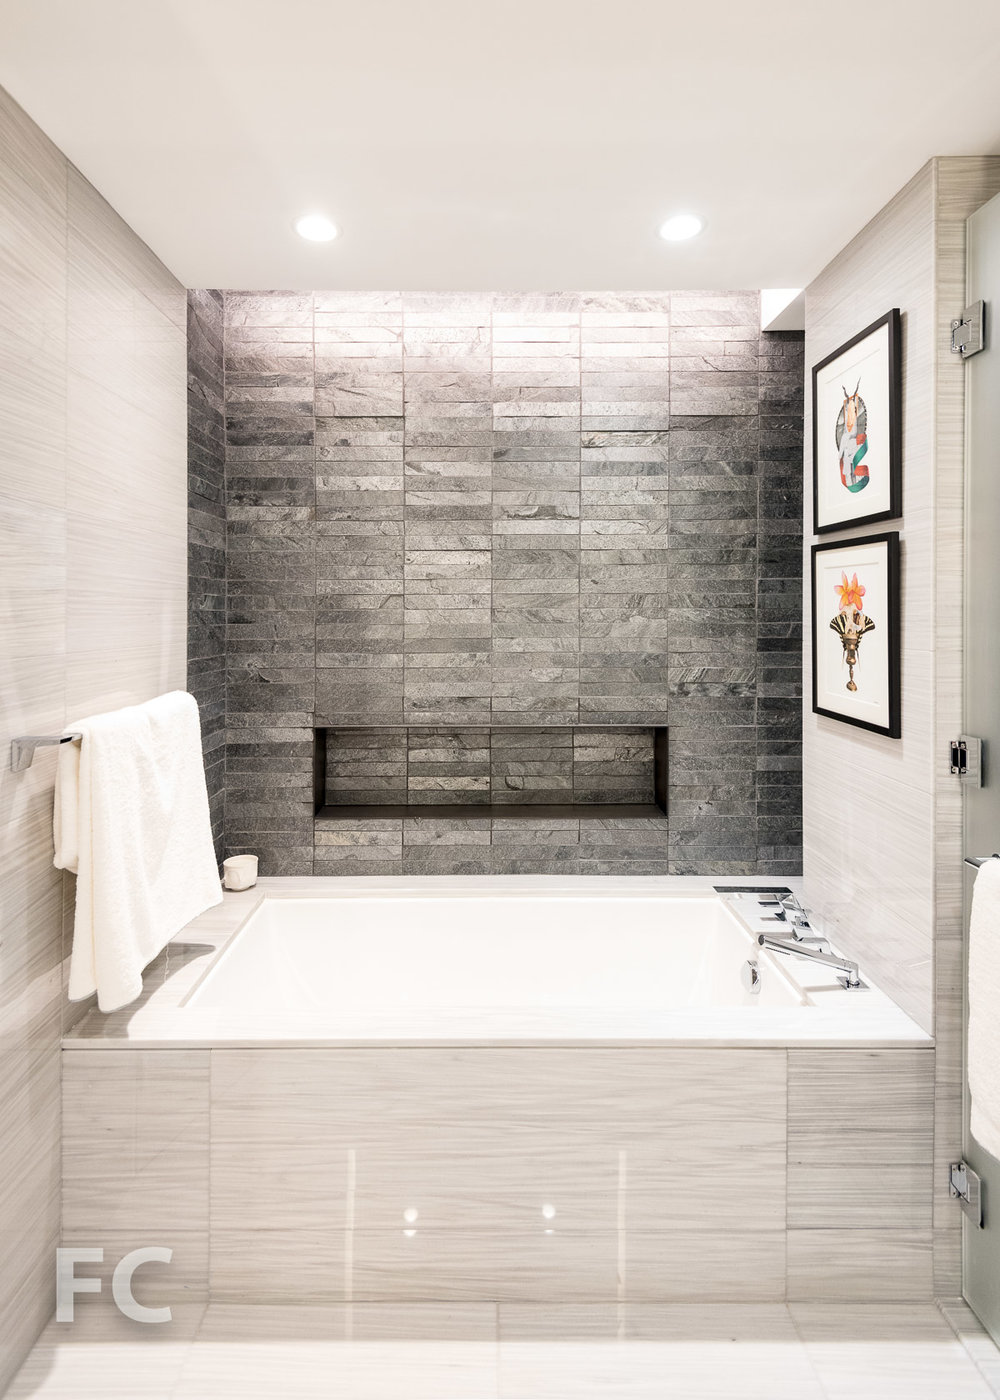 Master bathroom tub.